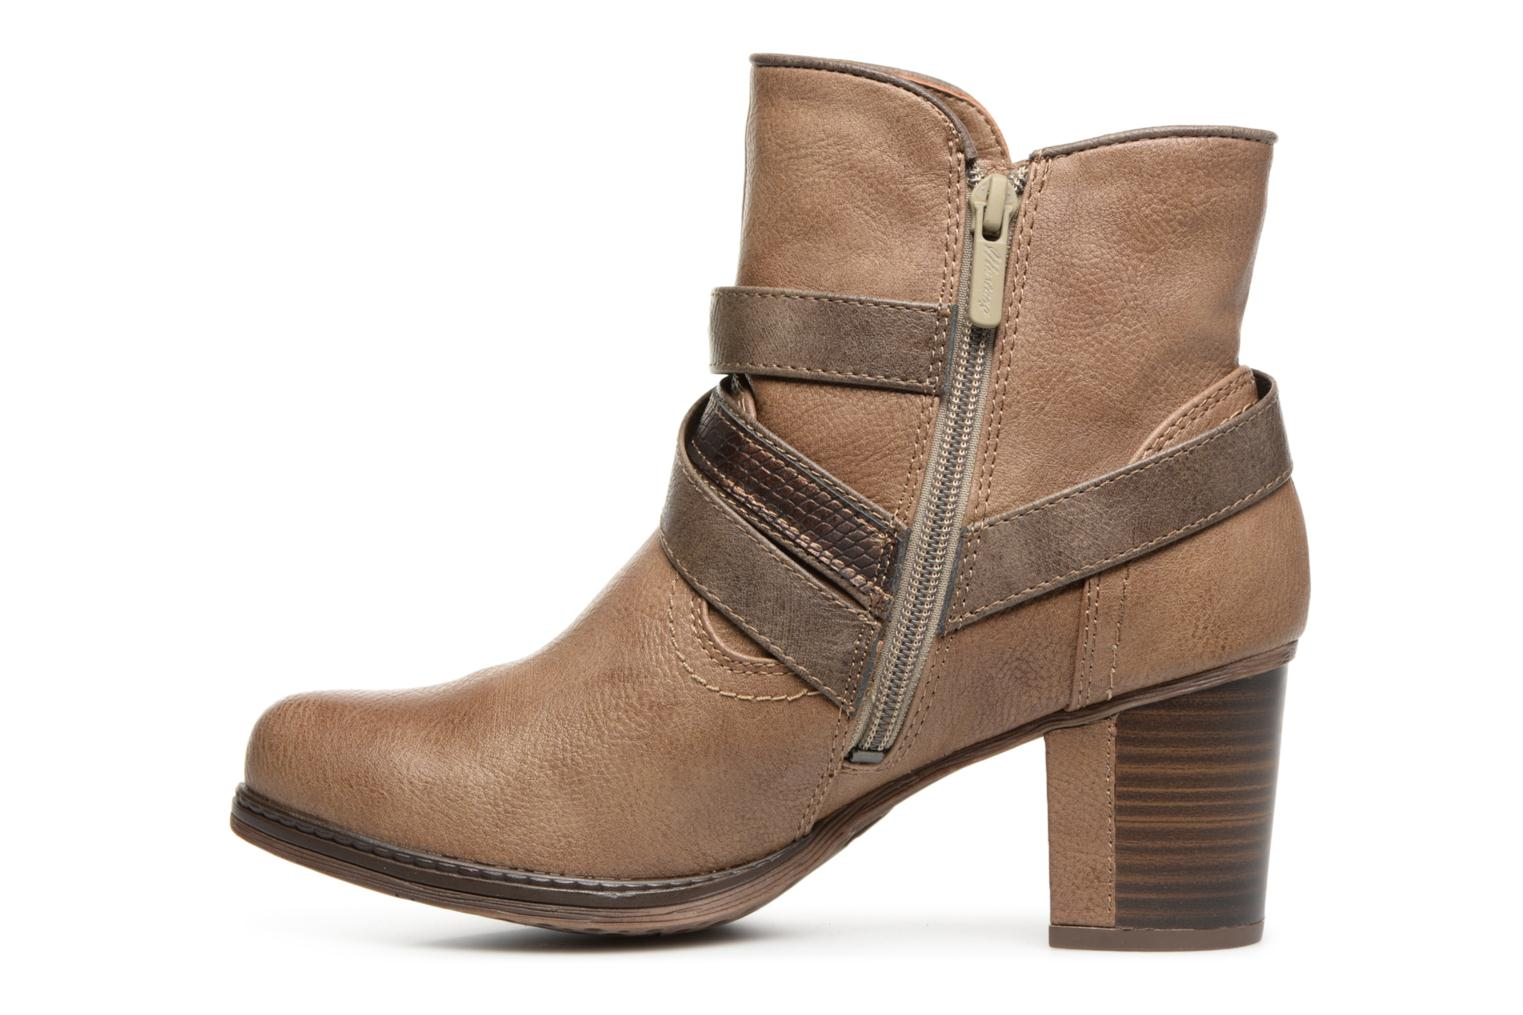 Shoes Vilou U4txtwq Shoes Taupe Taupe Mustang Mustang Vilou q0YwEE